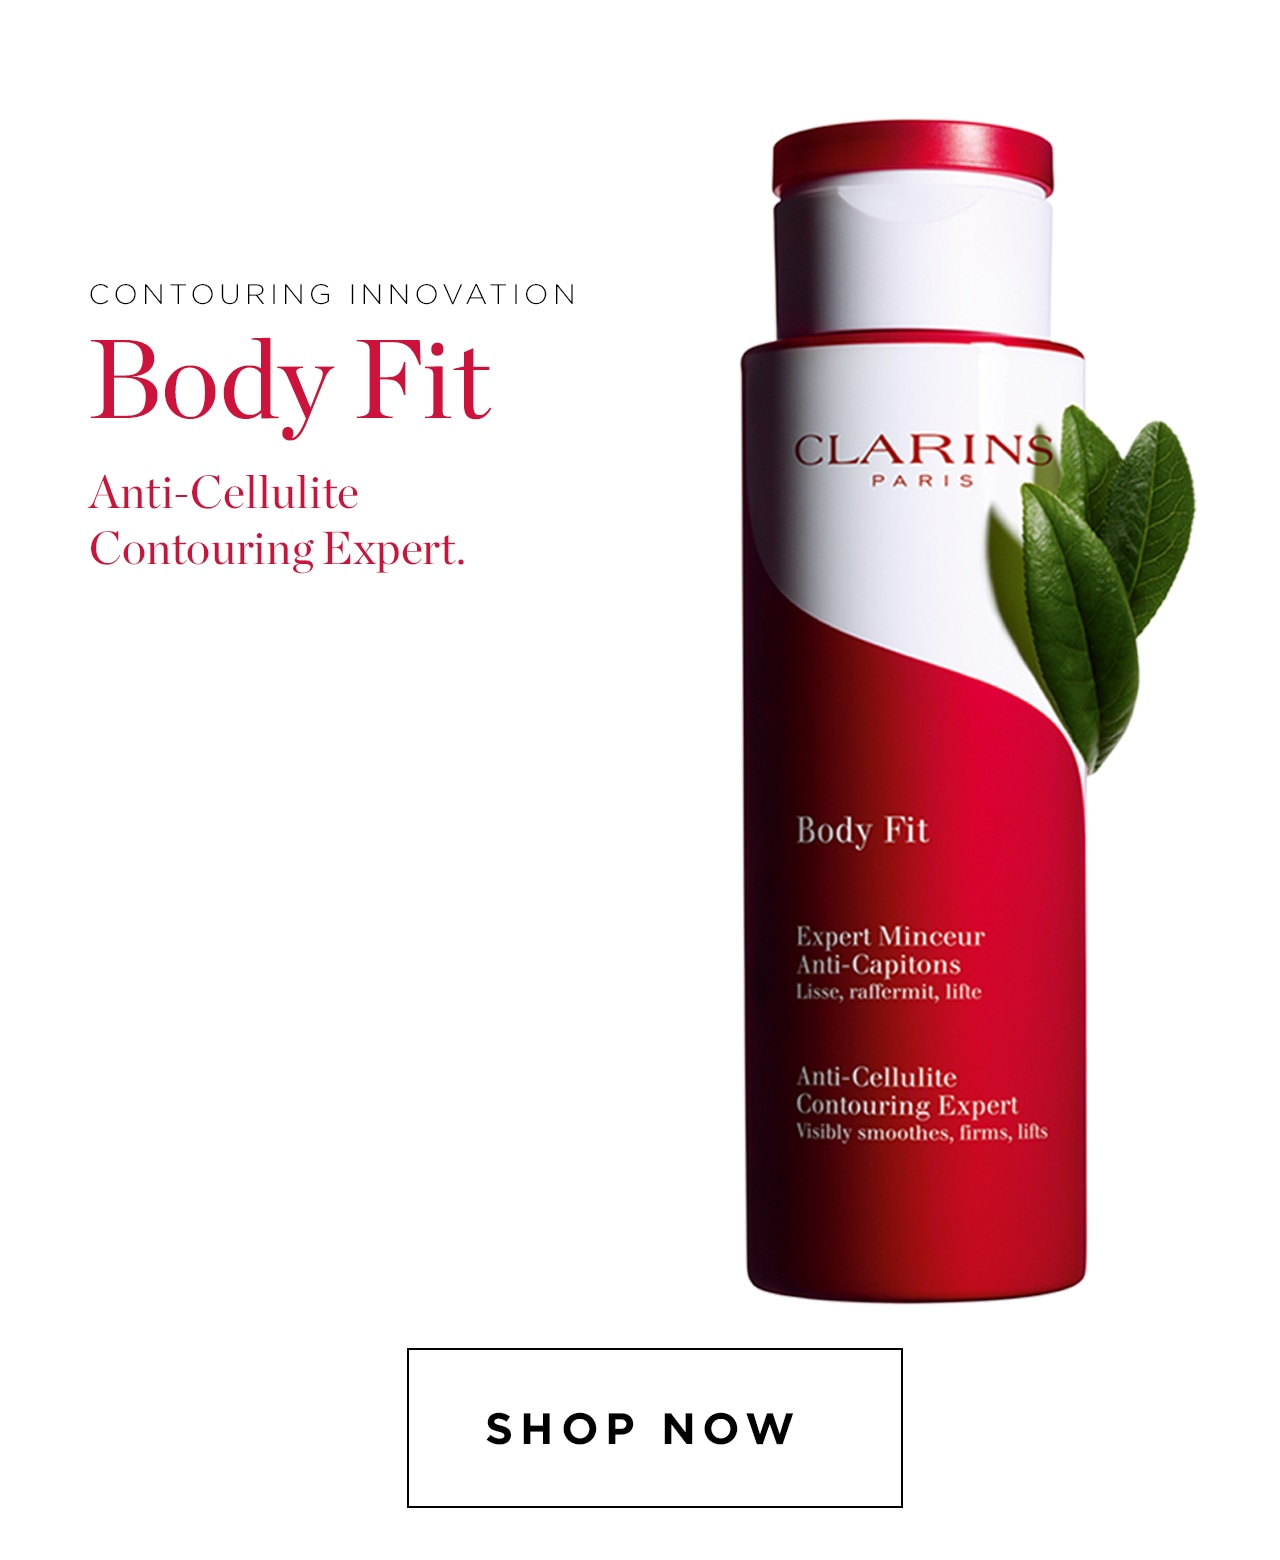 Body Fit Anti-Cellulite Contouring Expert